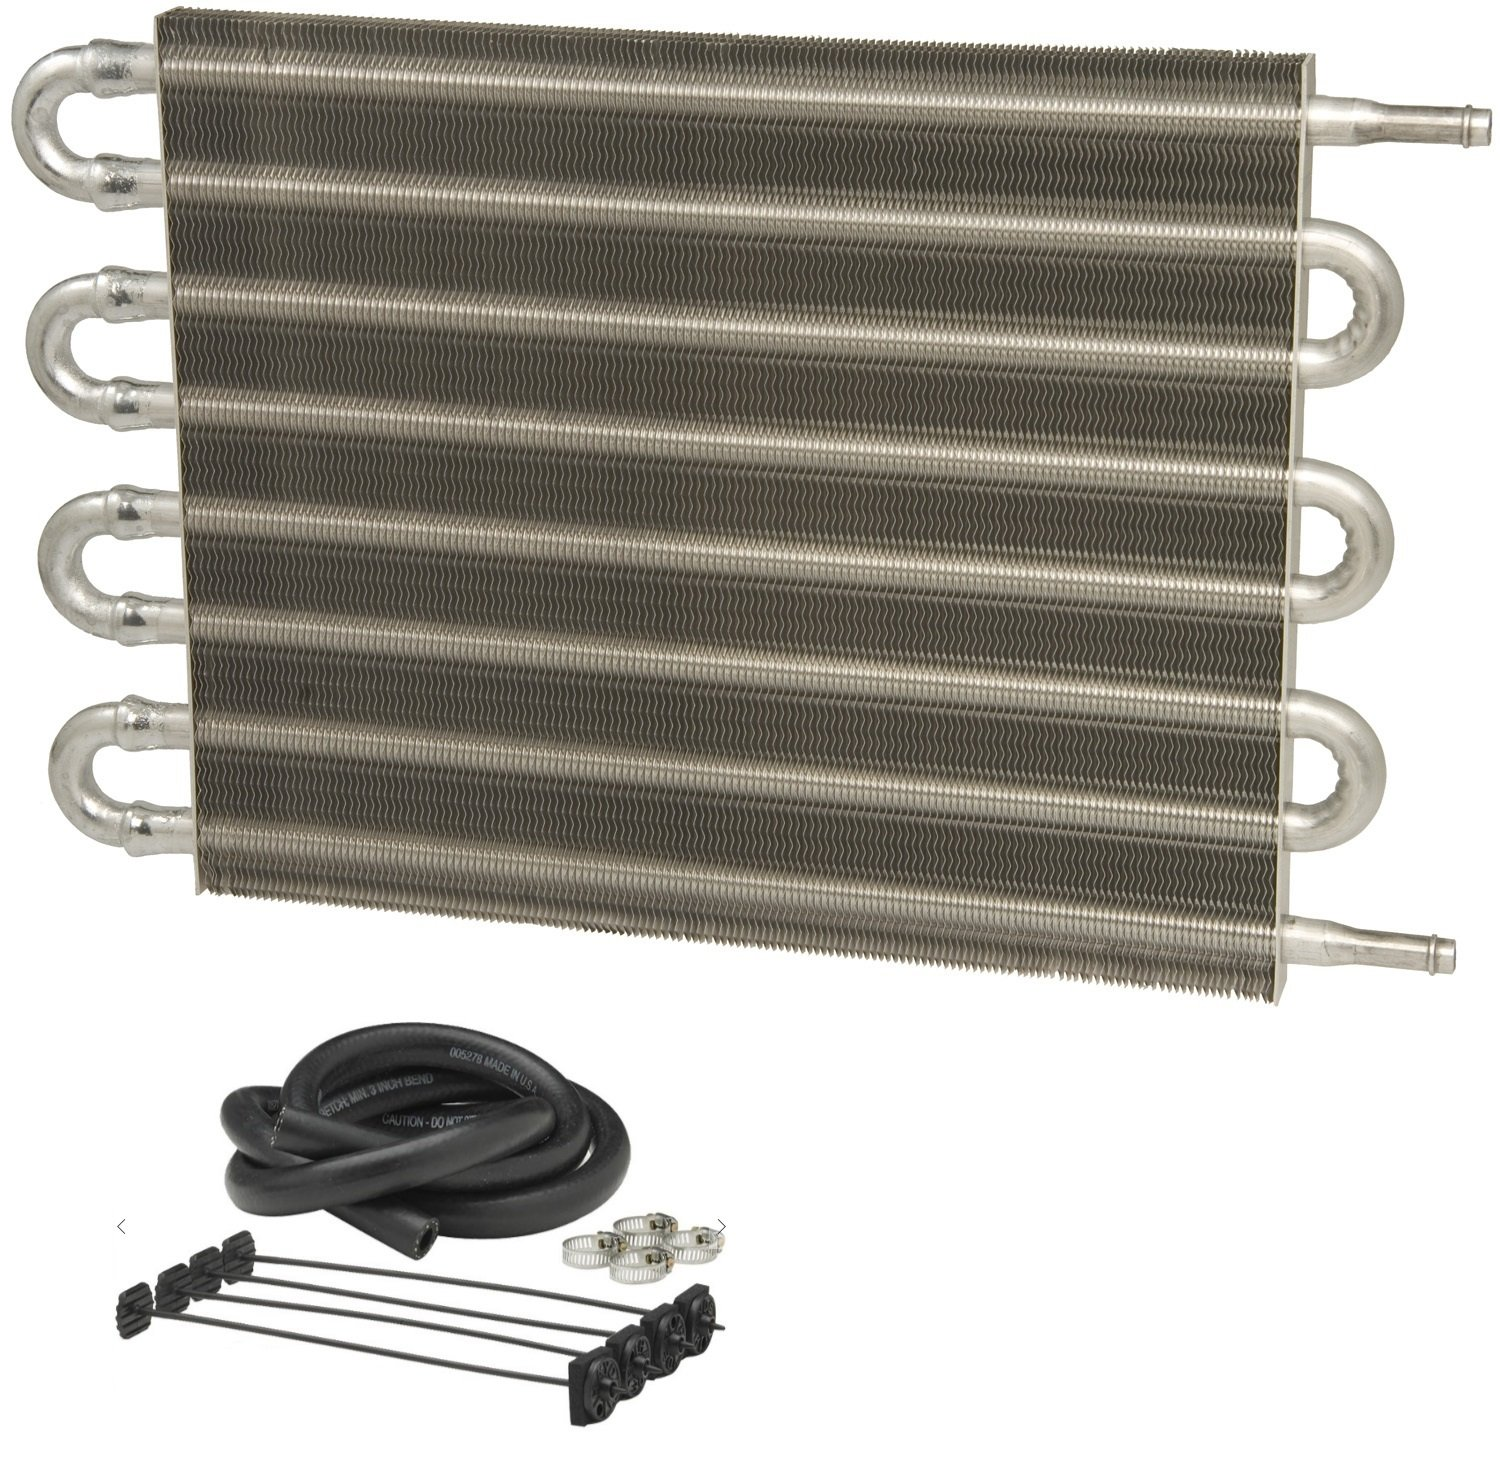 Four Seasons 53005 Rapid-Cool Transmission Oil Cooler